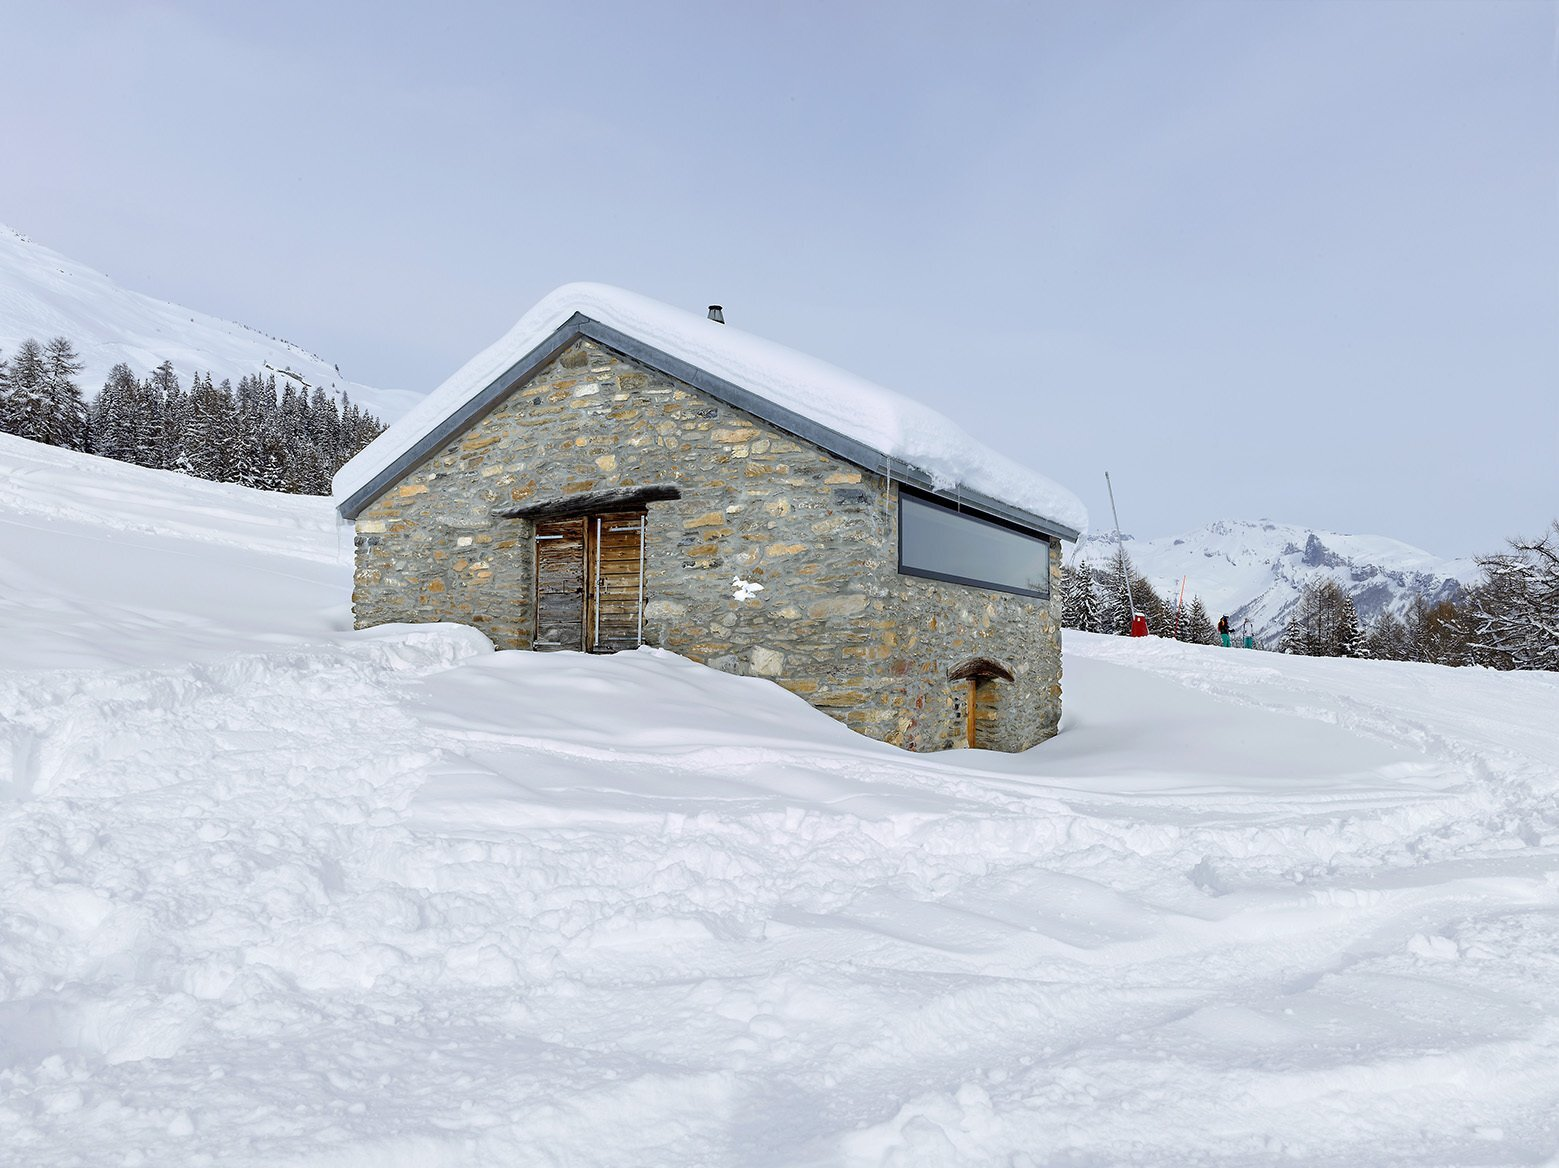 Gaudin House - Small Cabin - Savioz Fabrizzi Architectes - Switzerland - Exterior - Humble Homes